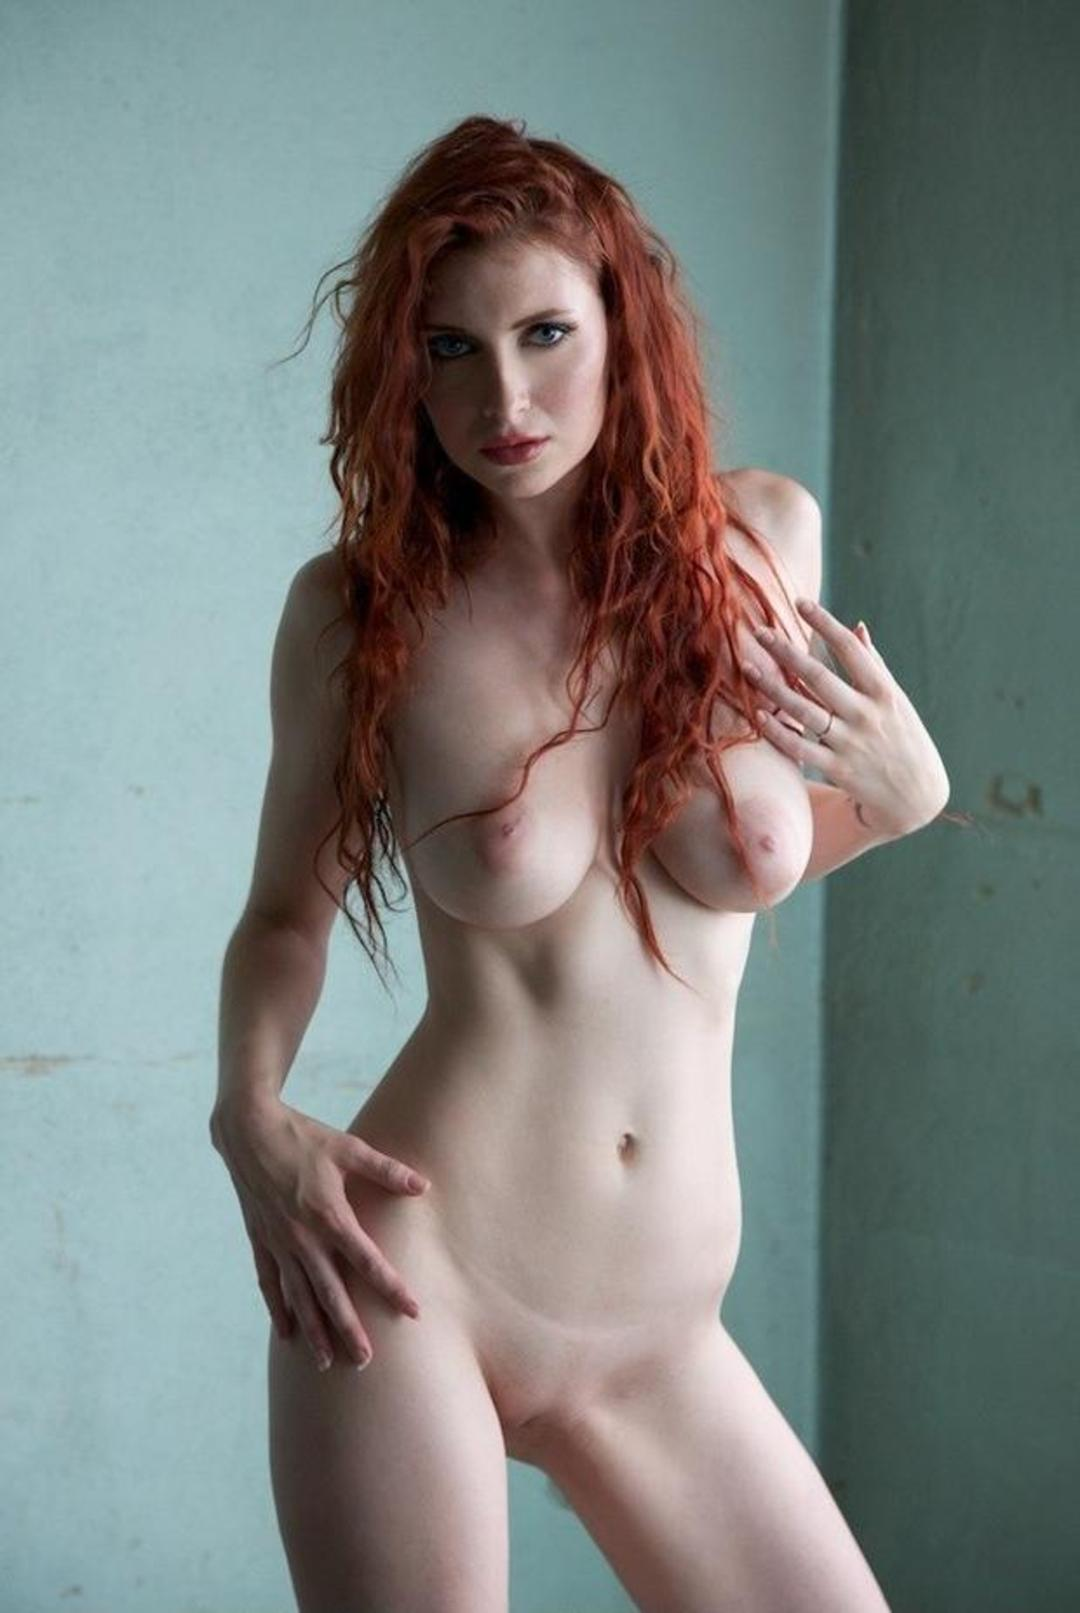 redheads Boobs and